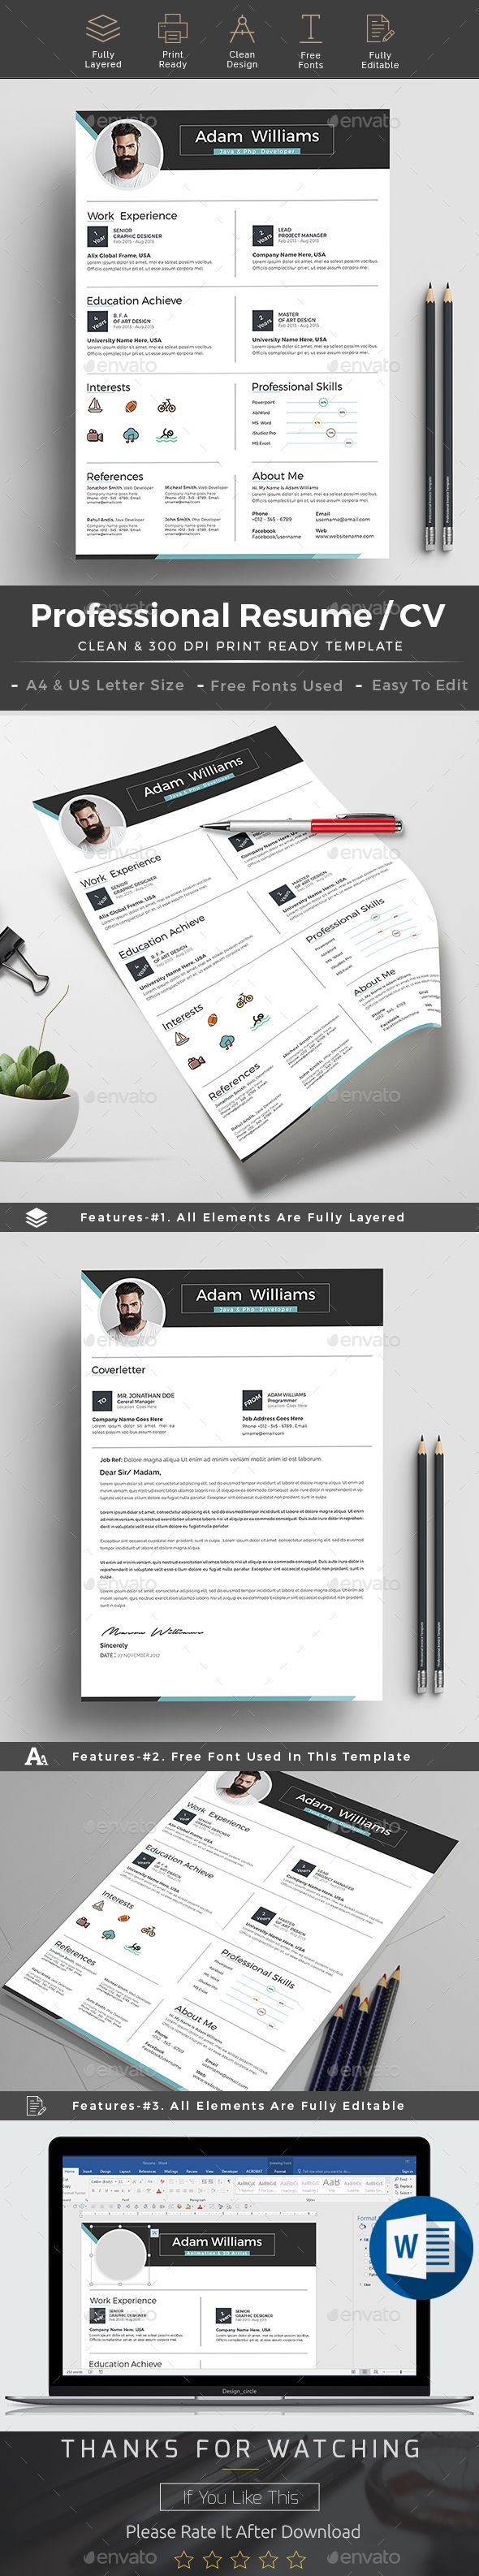 Free 1 Page Resume Template%0A Resume cv word